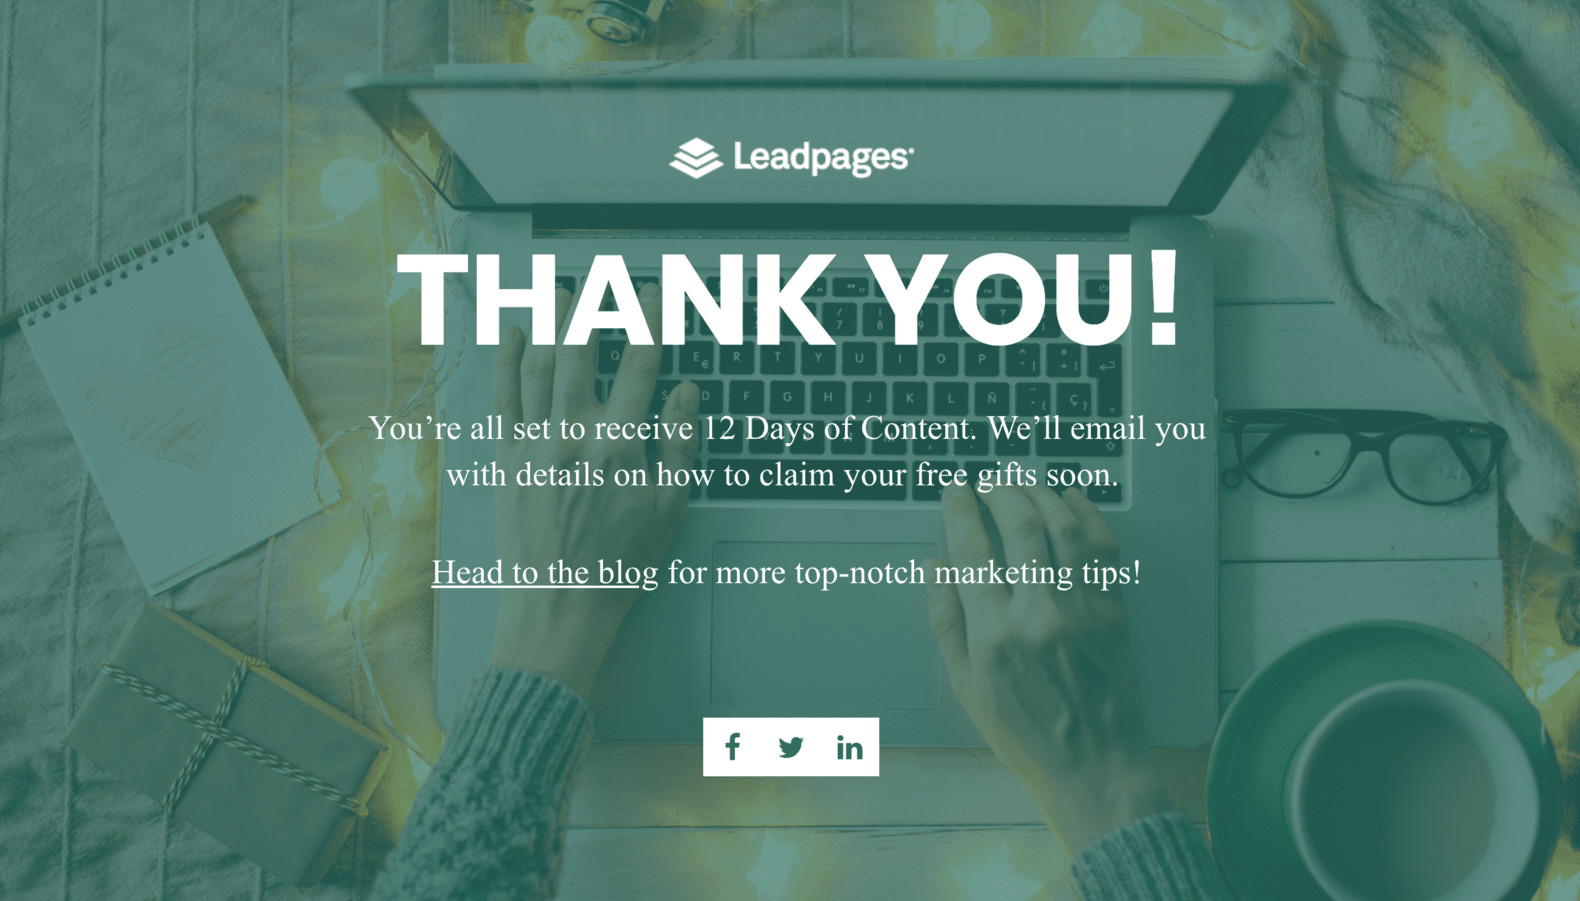 Leadpages sample thank you page